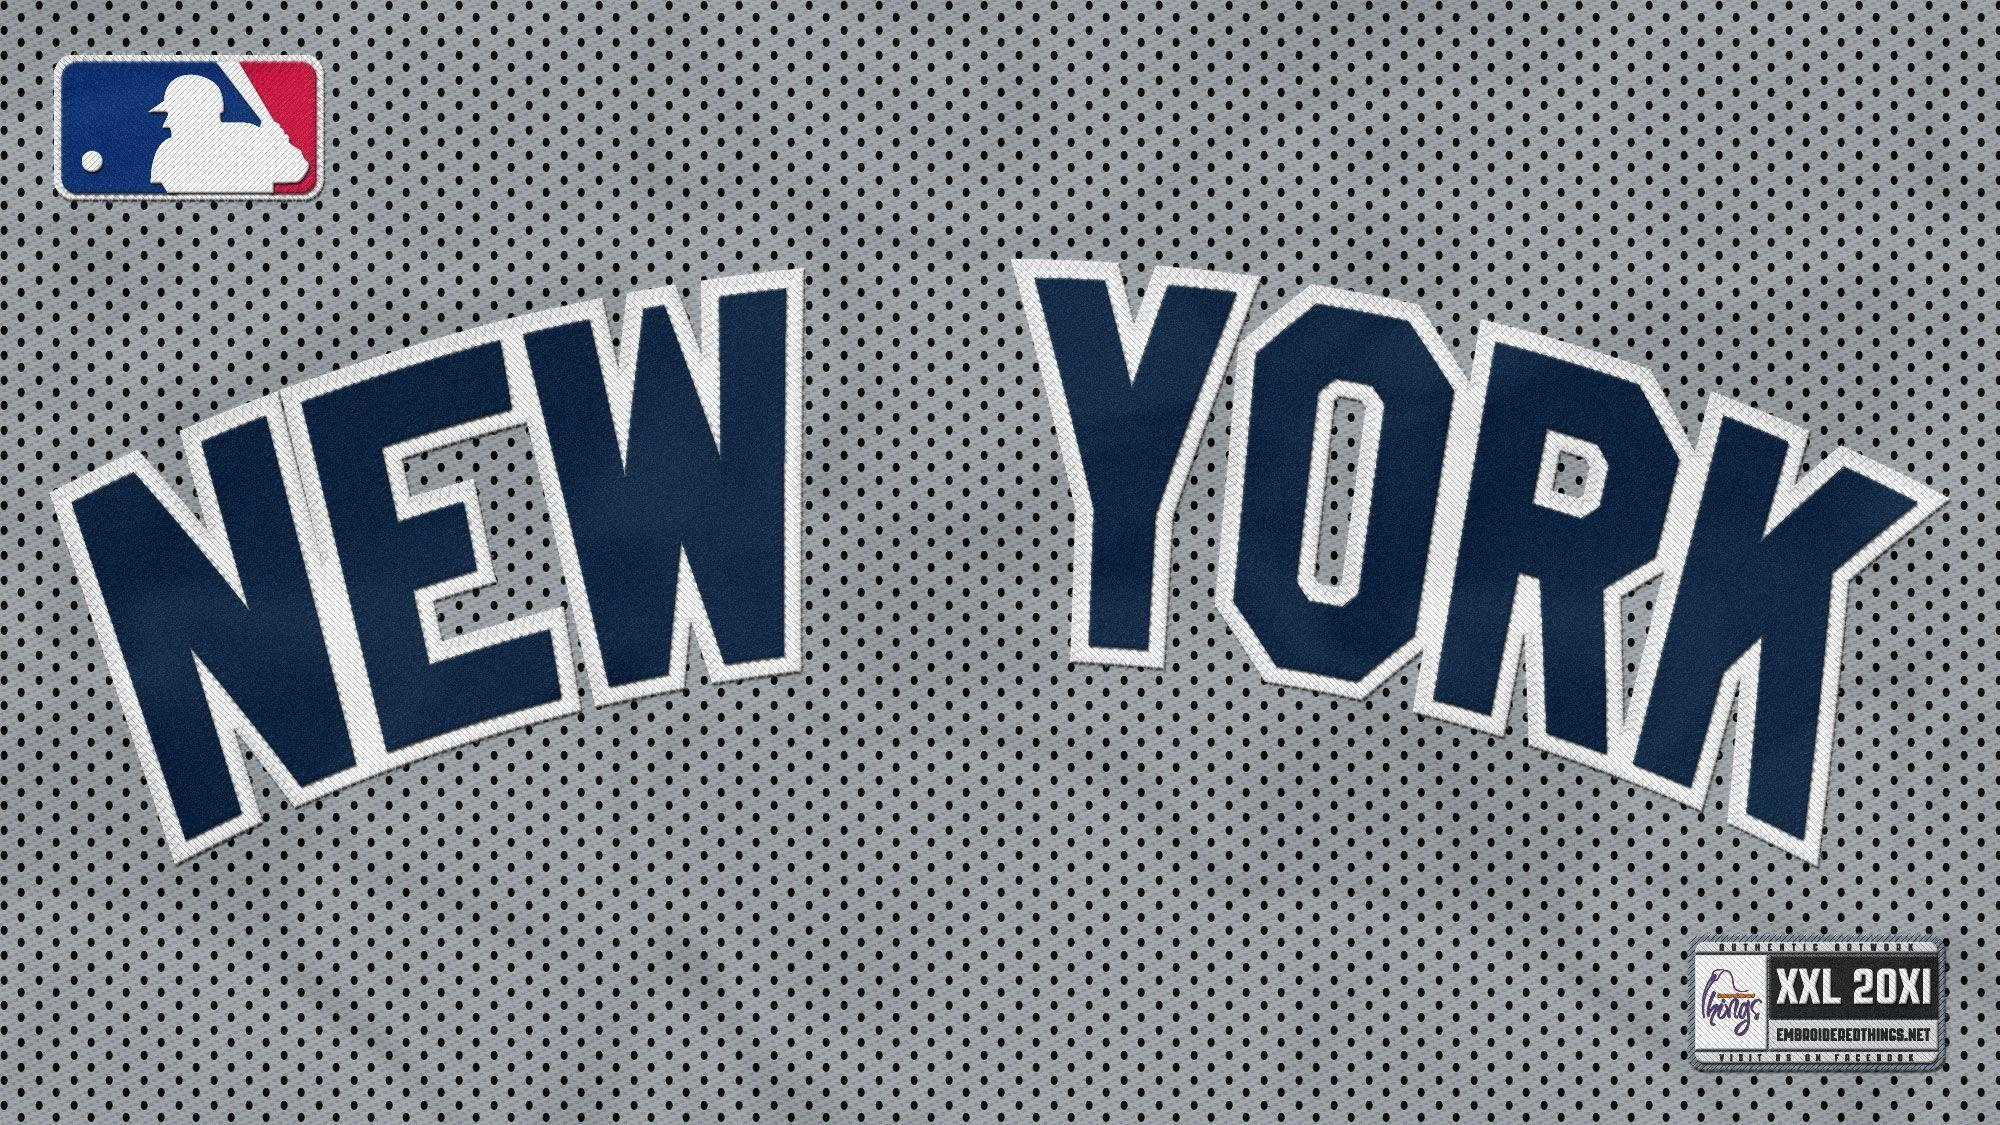 23 New York Yankees Wallpapers